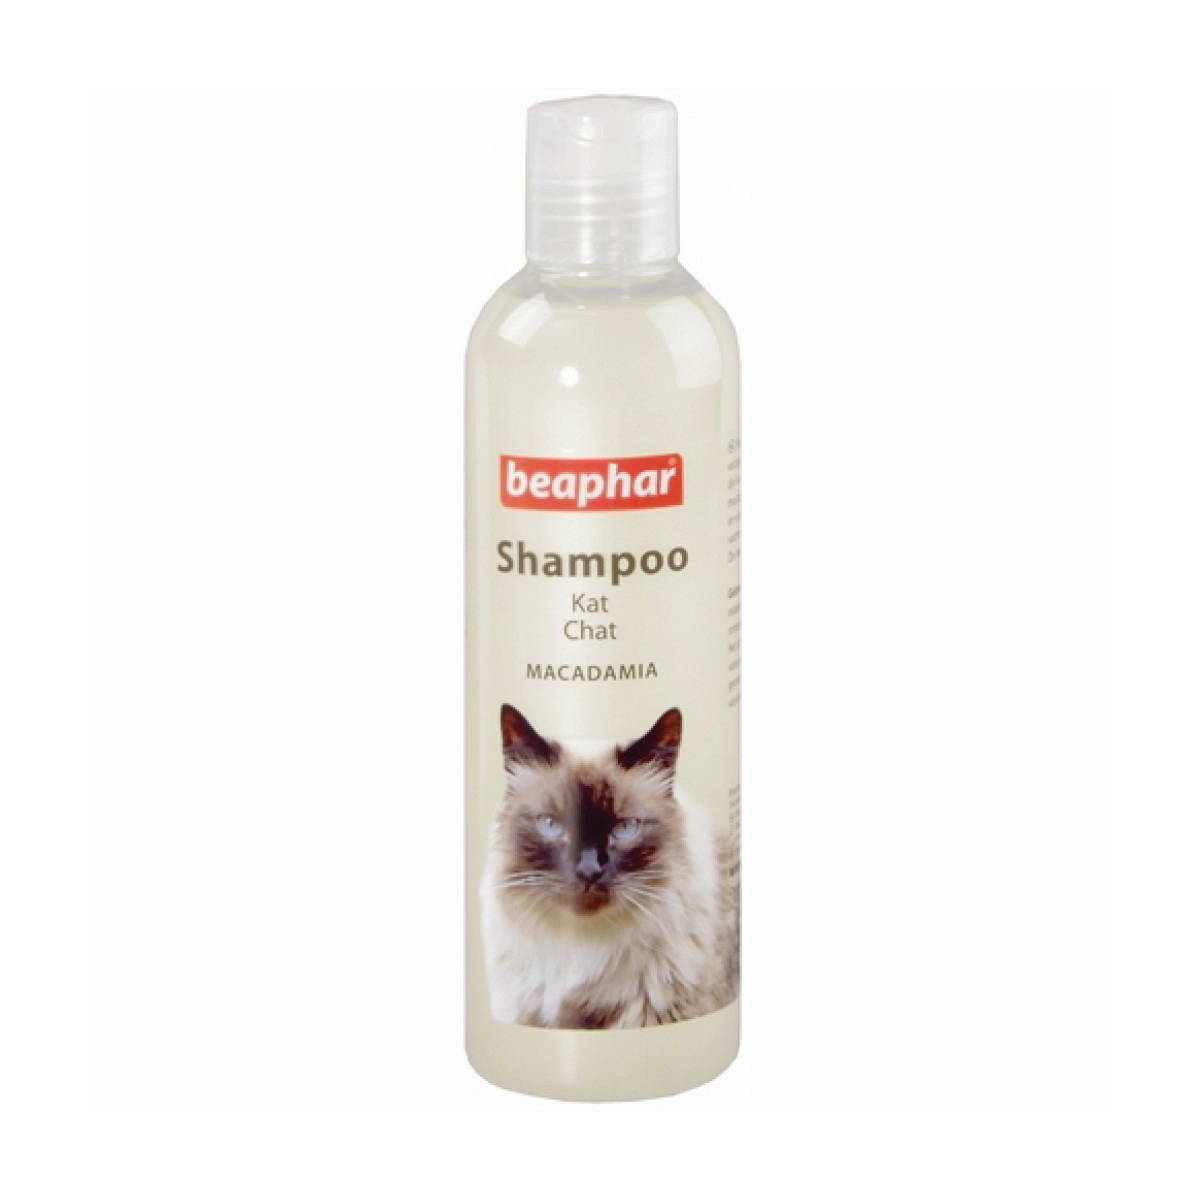 Shampoo macadamia wit 250 ml